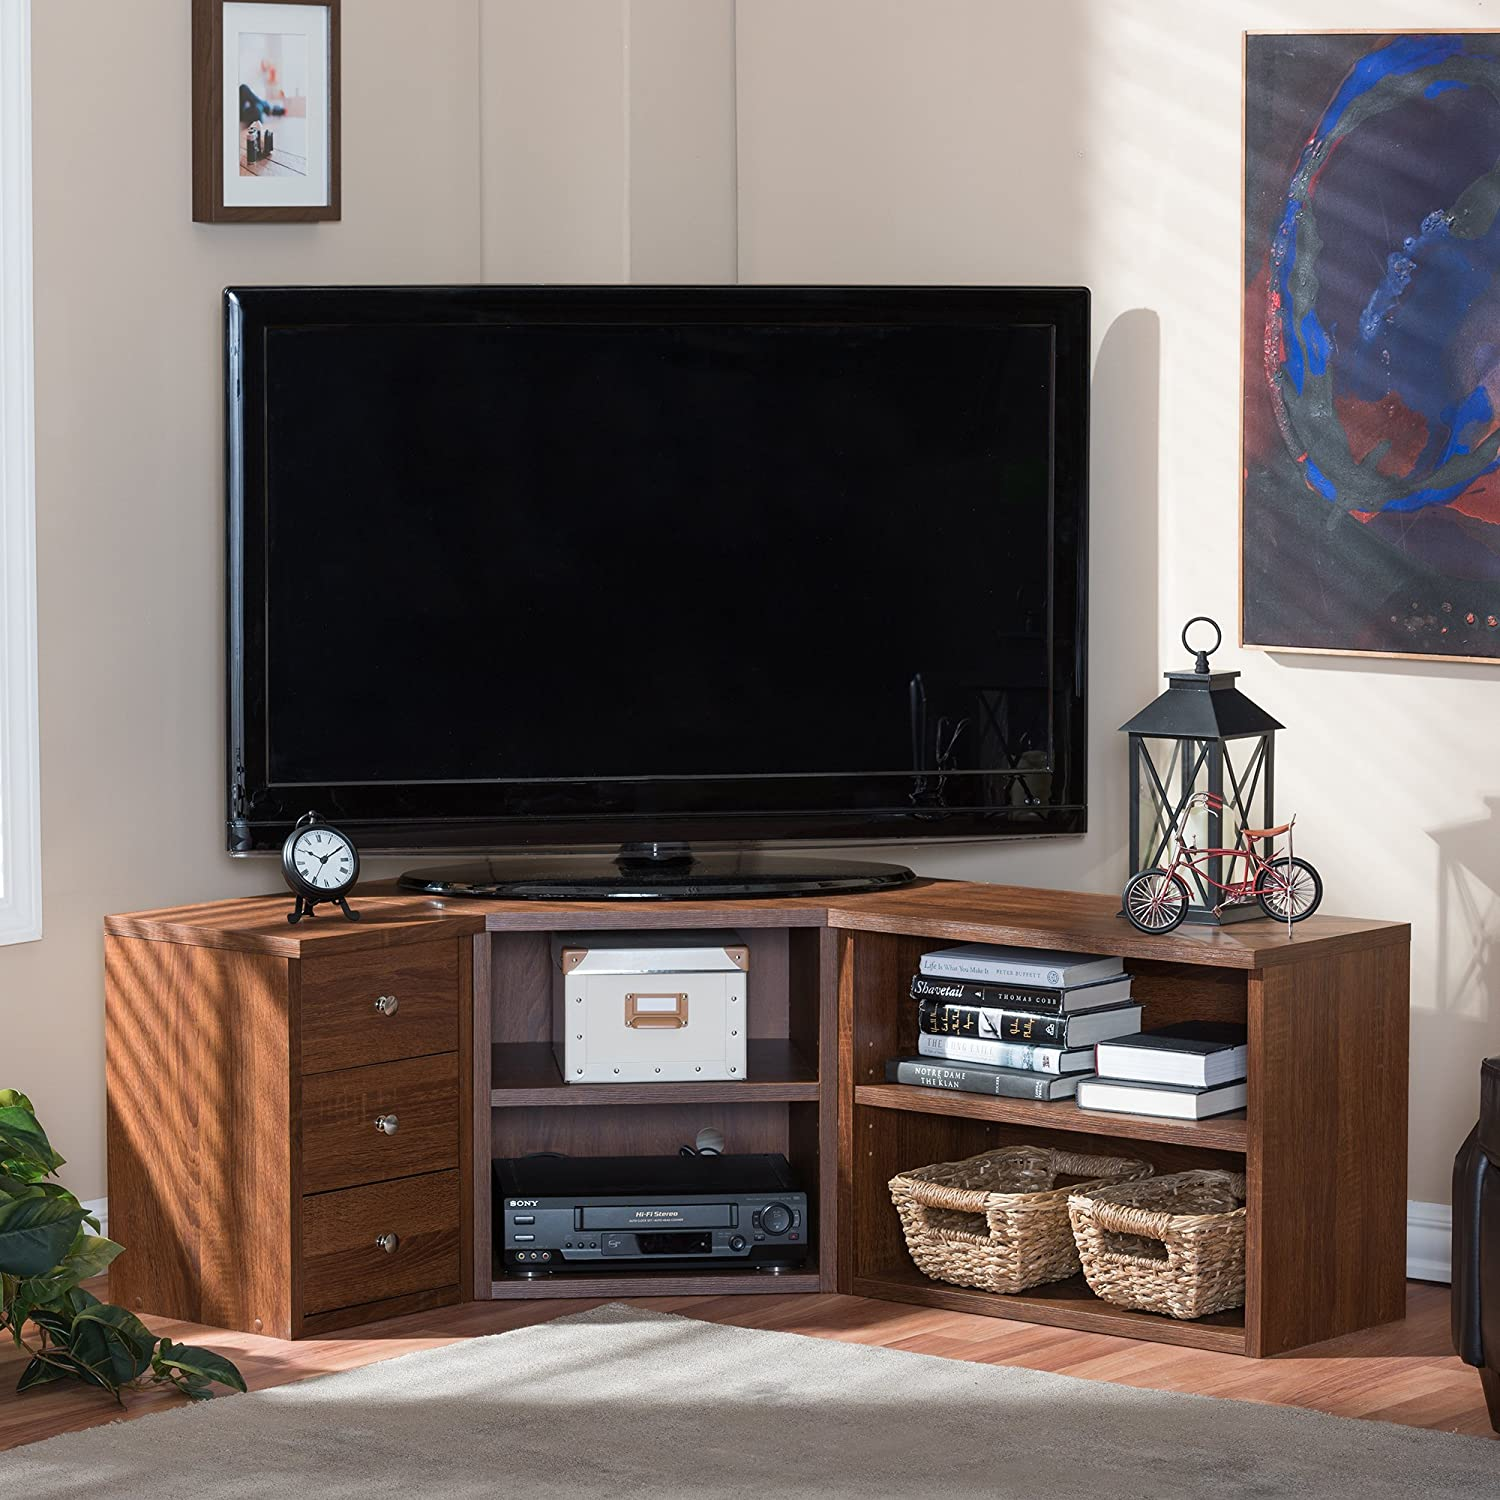 lowe canada rooms go fireplace living s mounts console more zena tv to room stands corner wall stand furniture